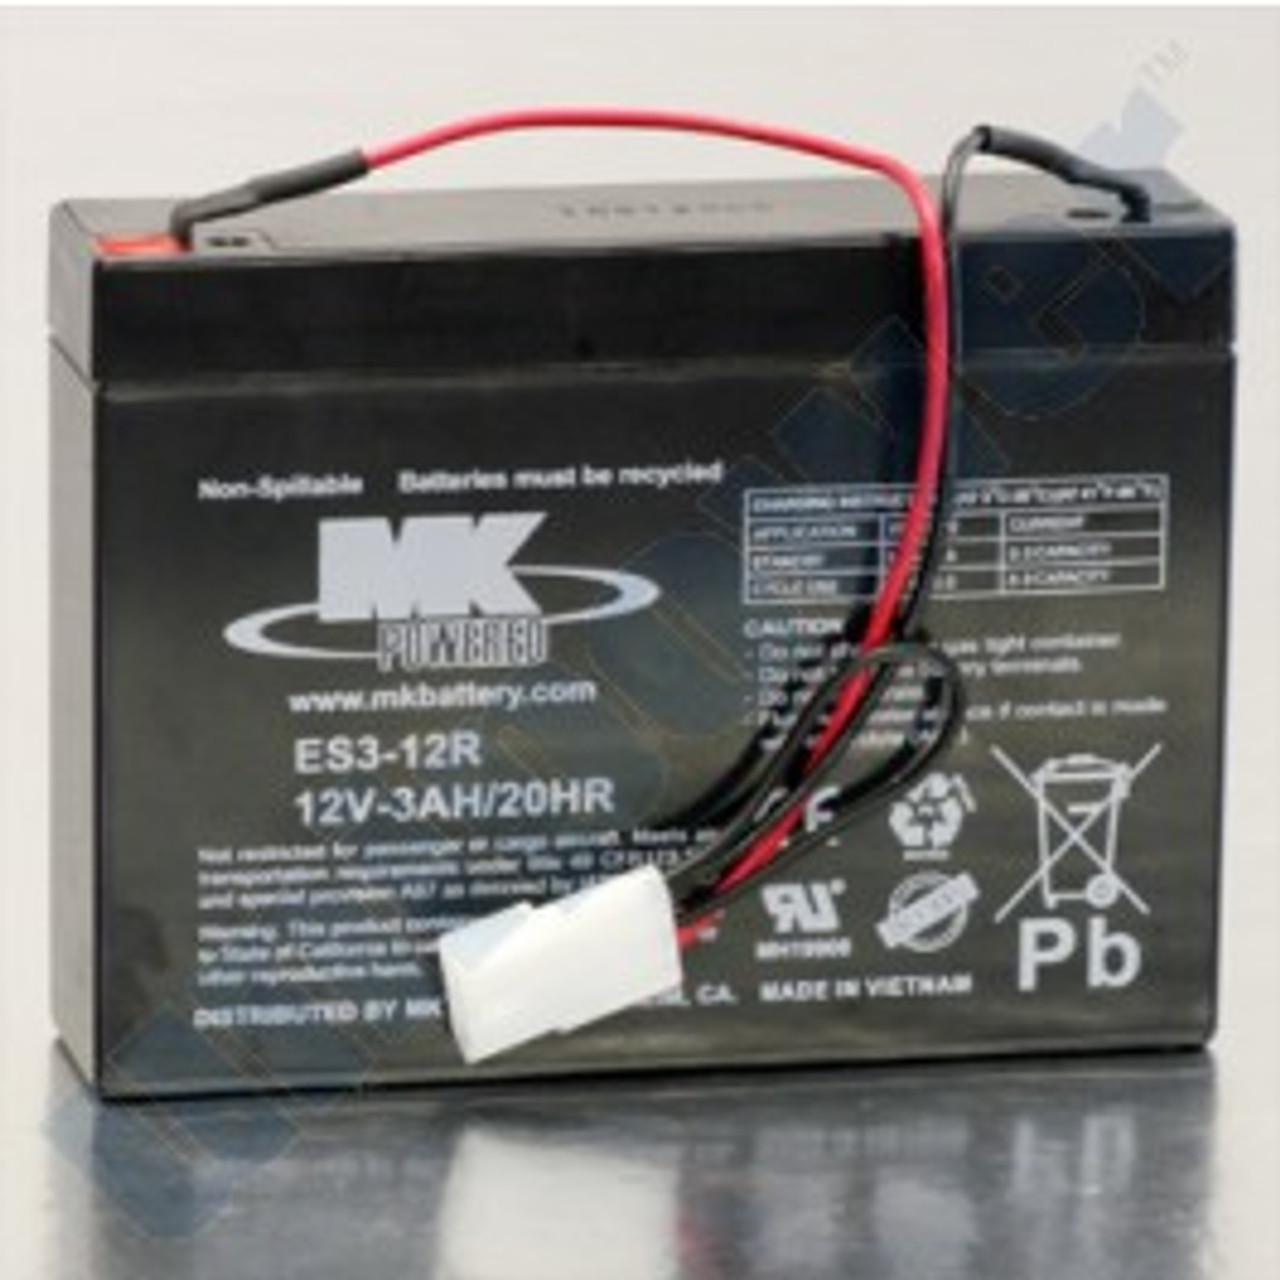 Replacement Battery for SSCORT VX2 Suction Unit